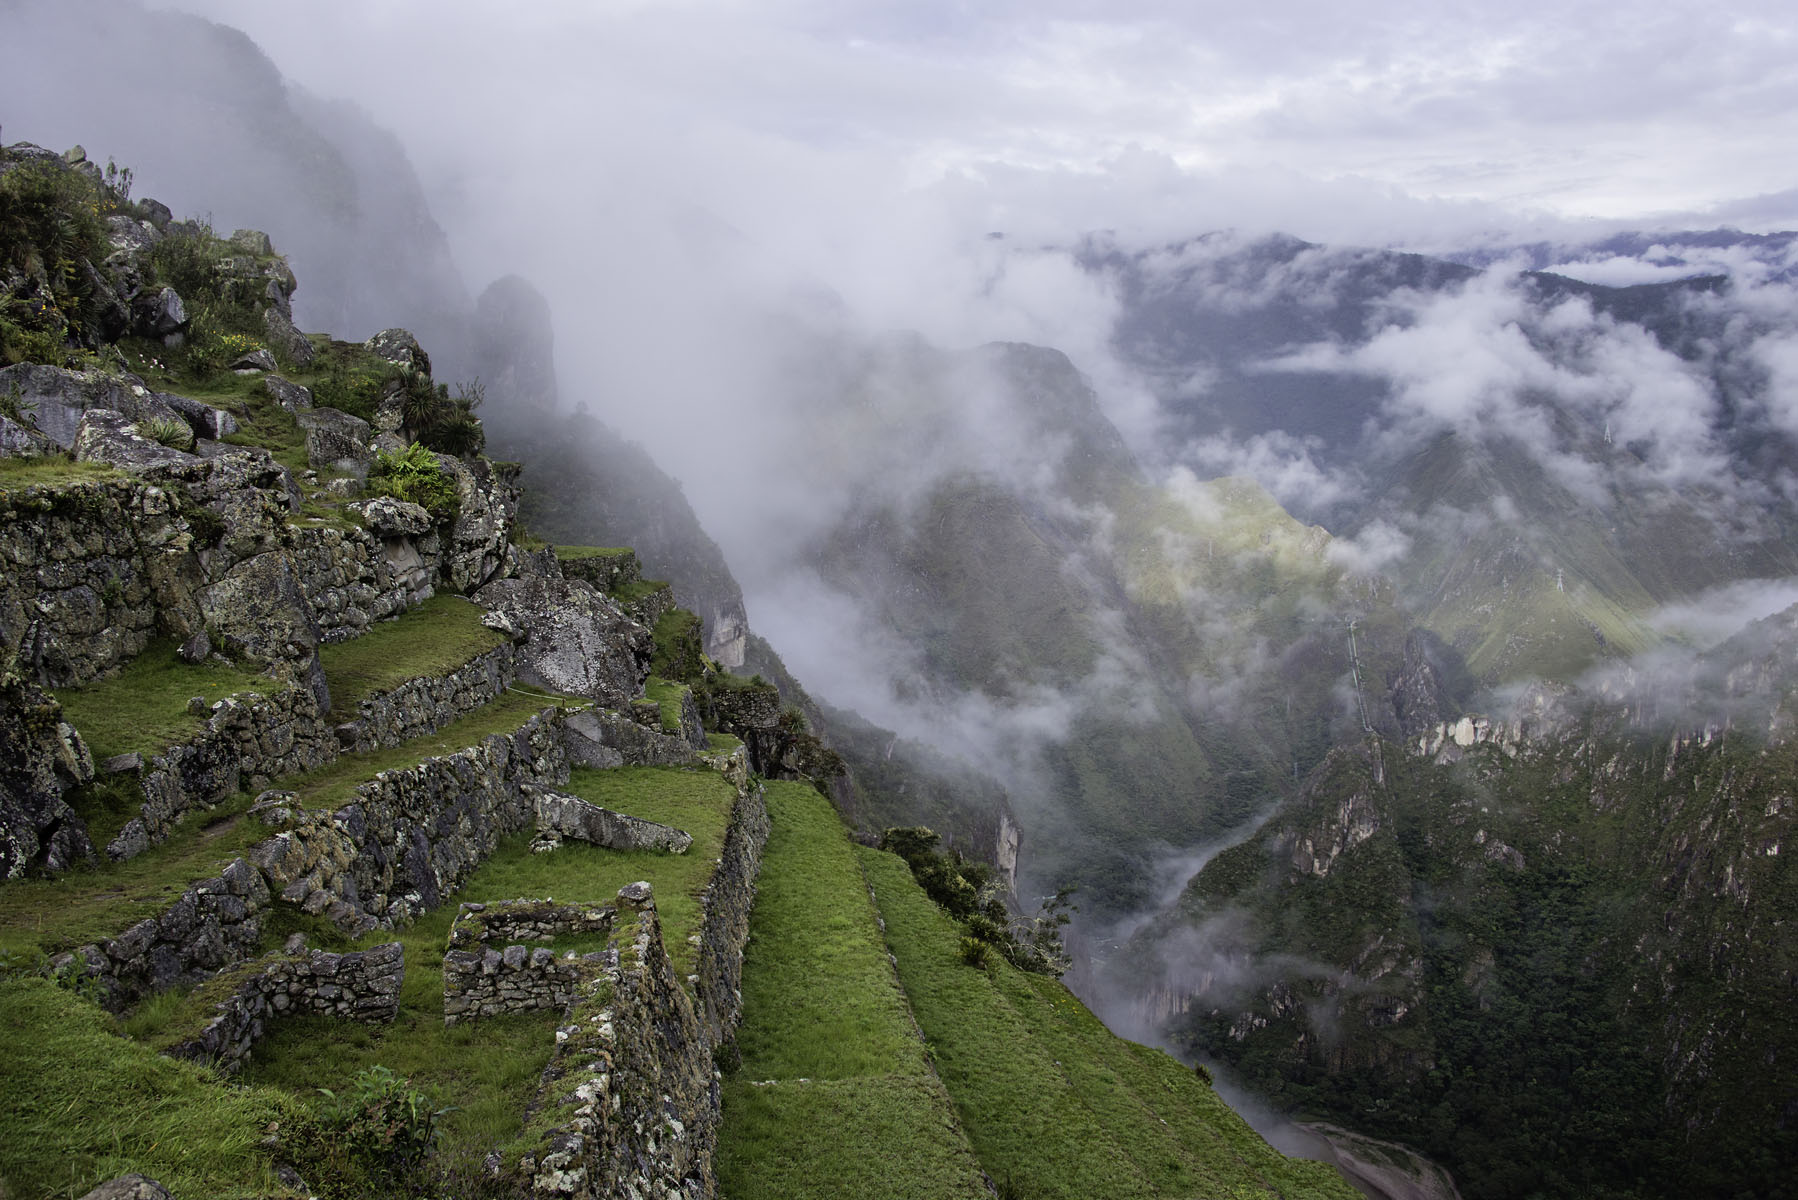 Clouds Covering the Mountains at Machu Picchu